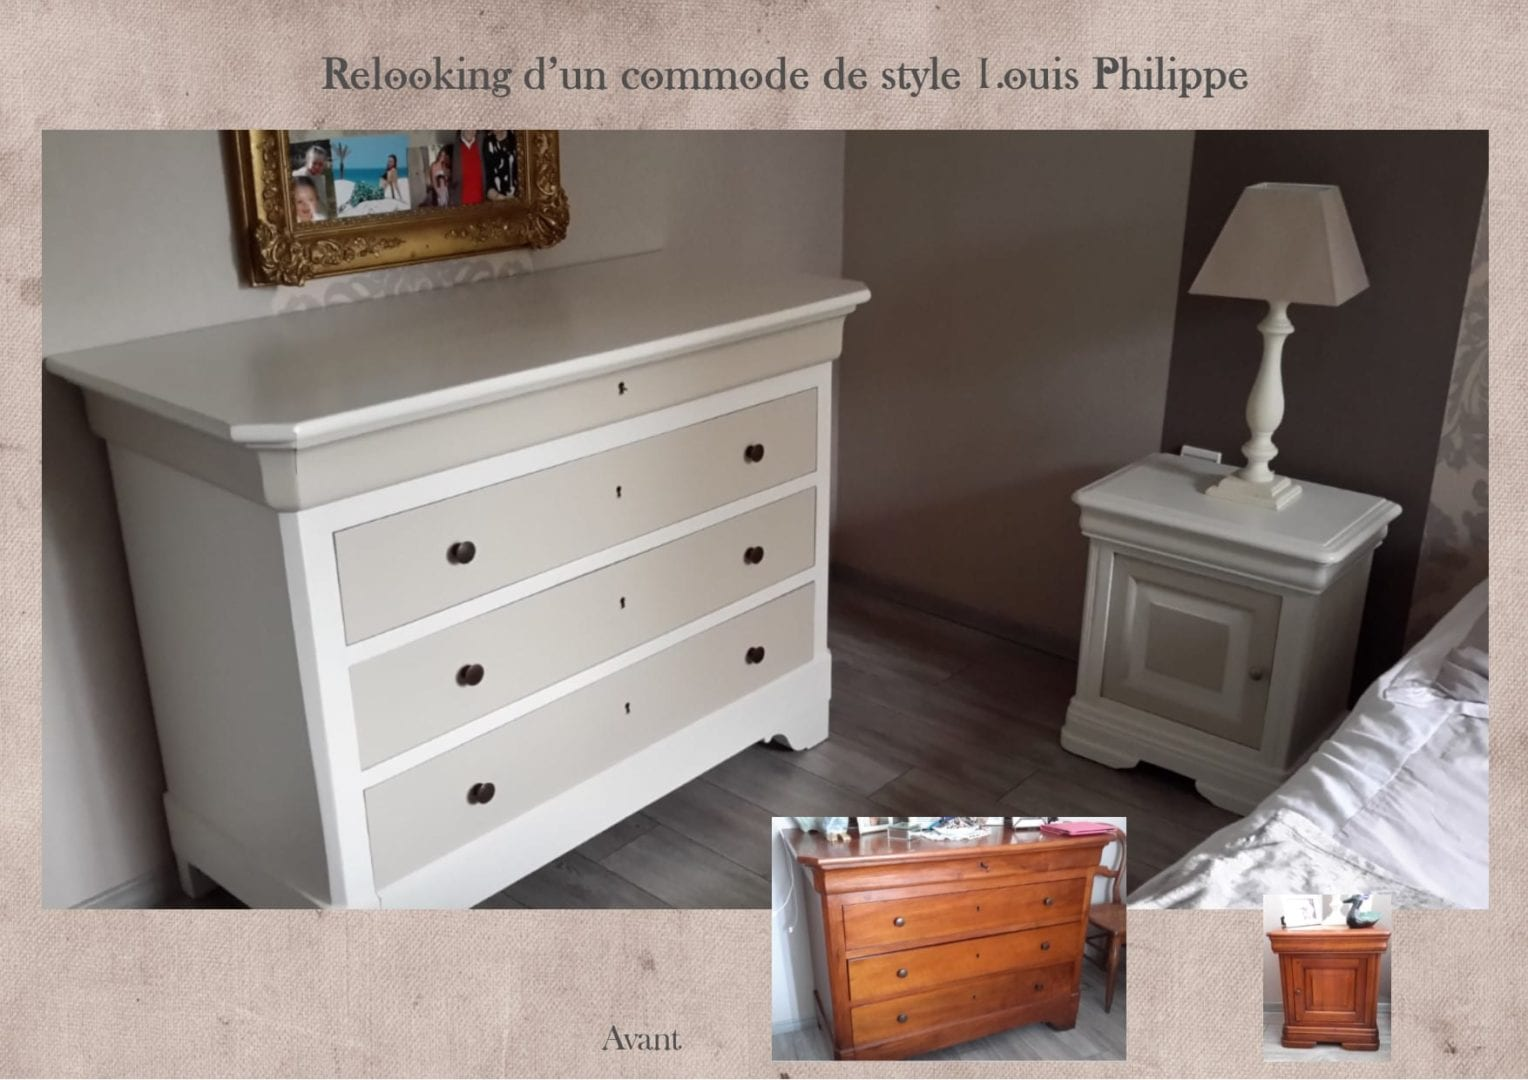 relooking-louisphilippe-lexquisetrouvaille